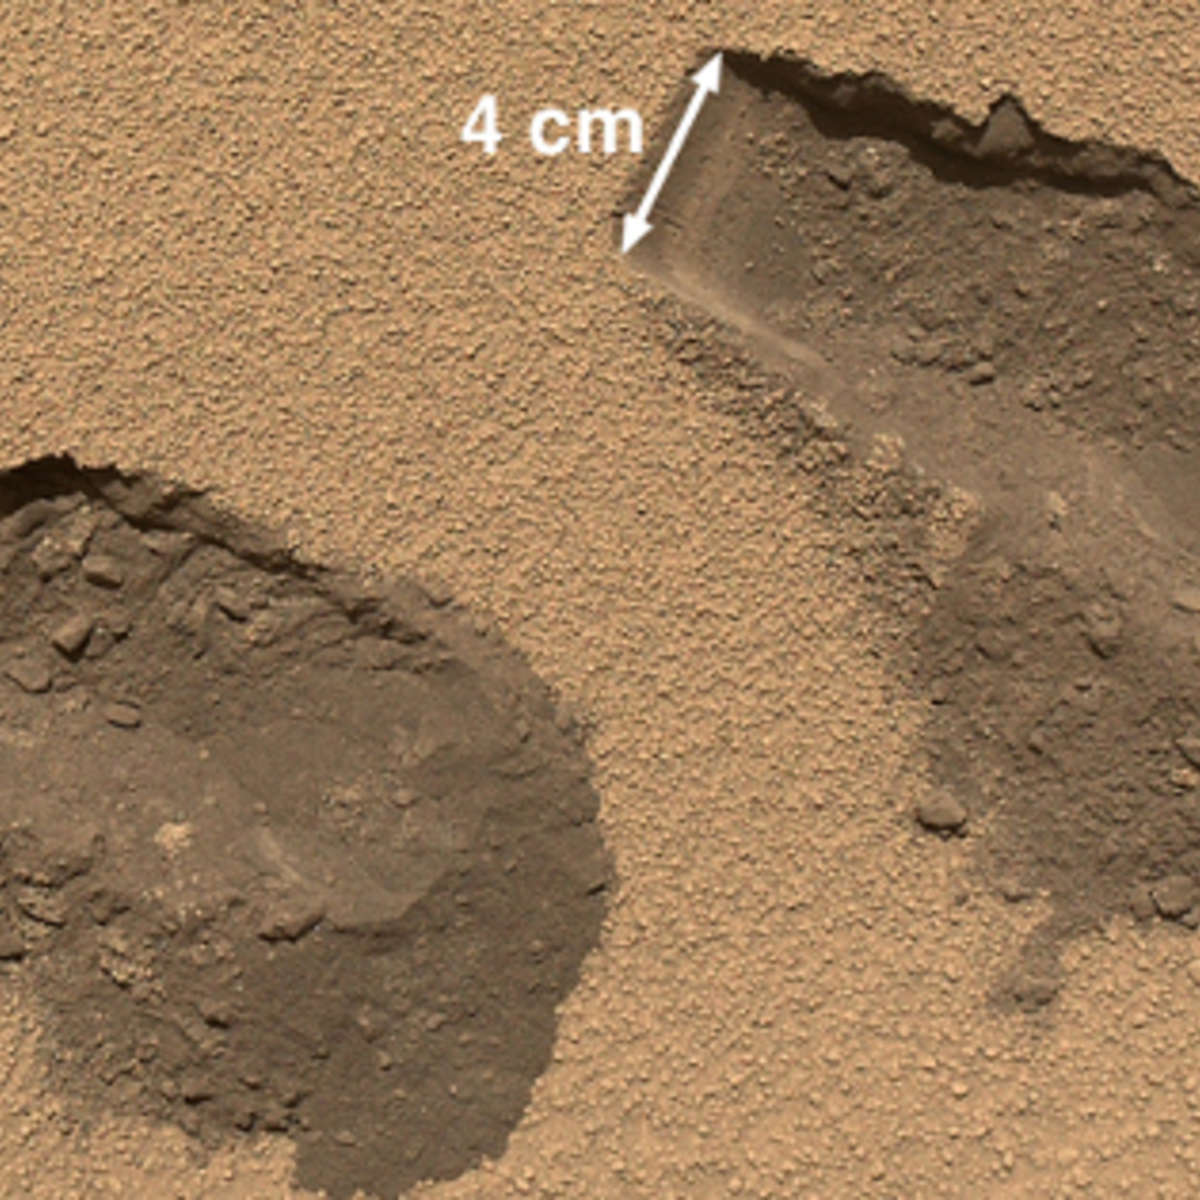 Curiosity%20sand%20scoop.jpg